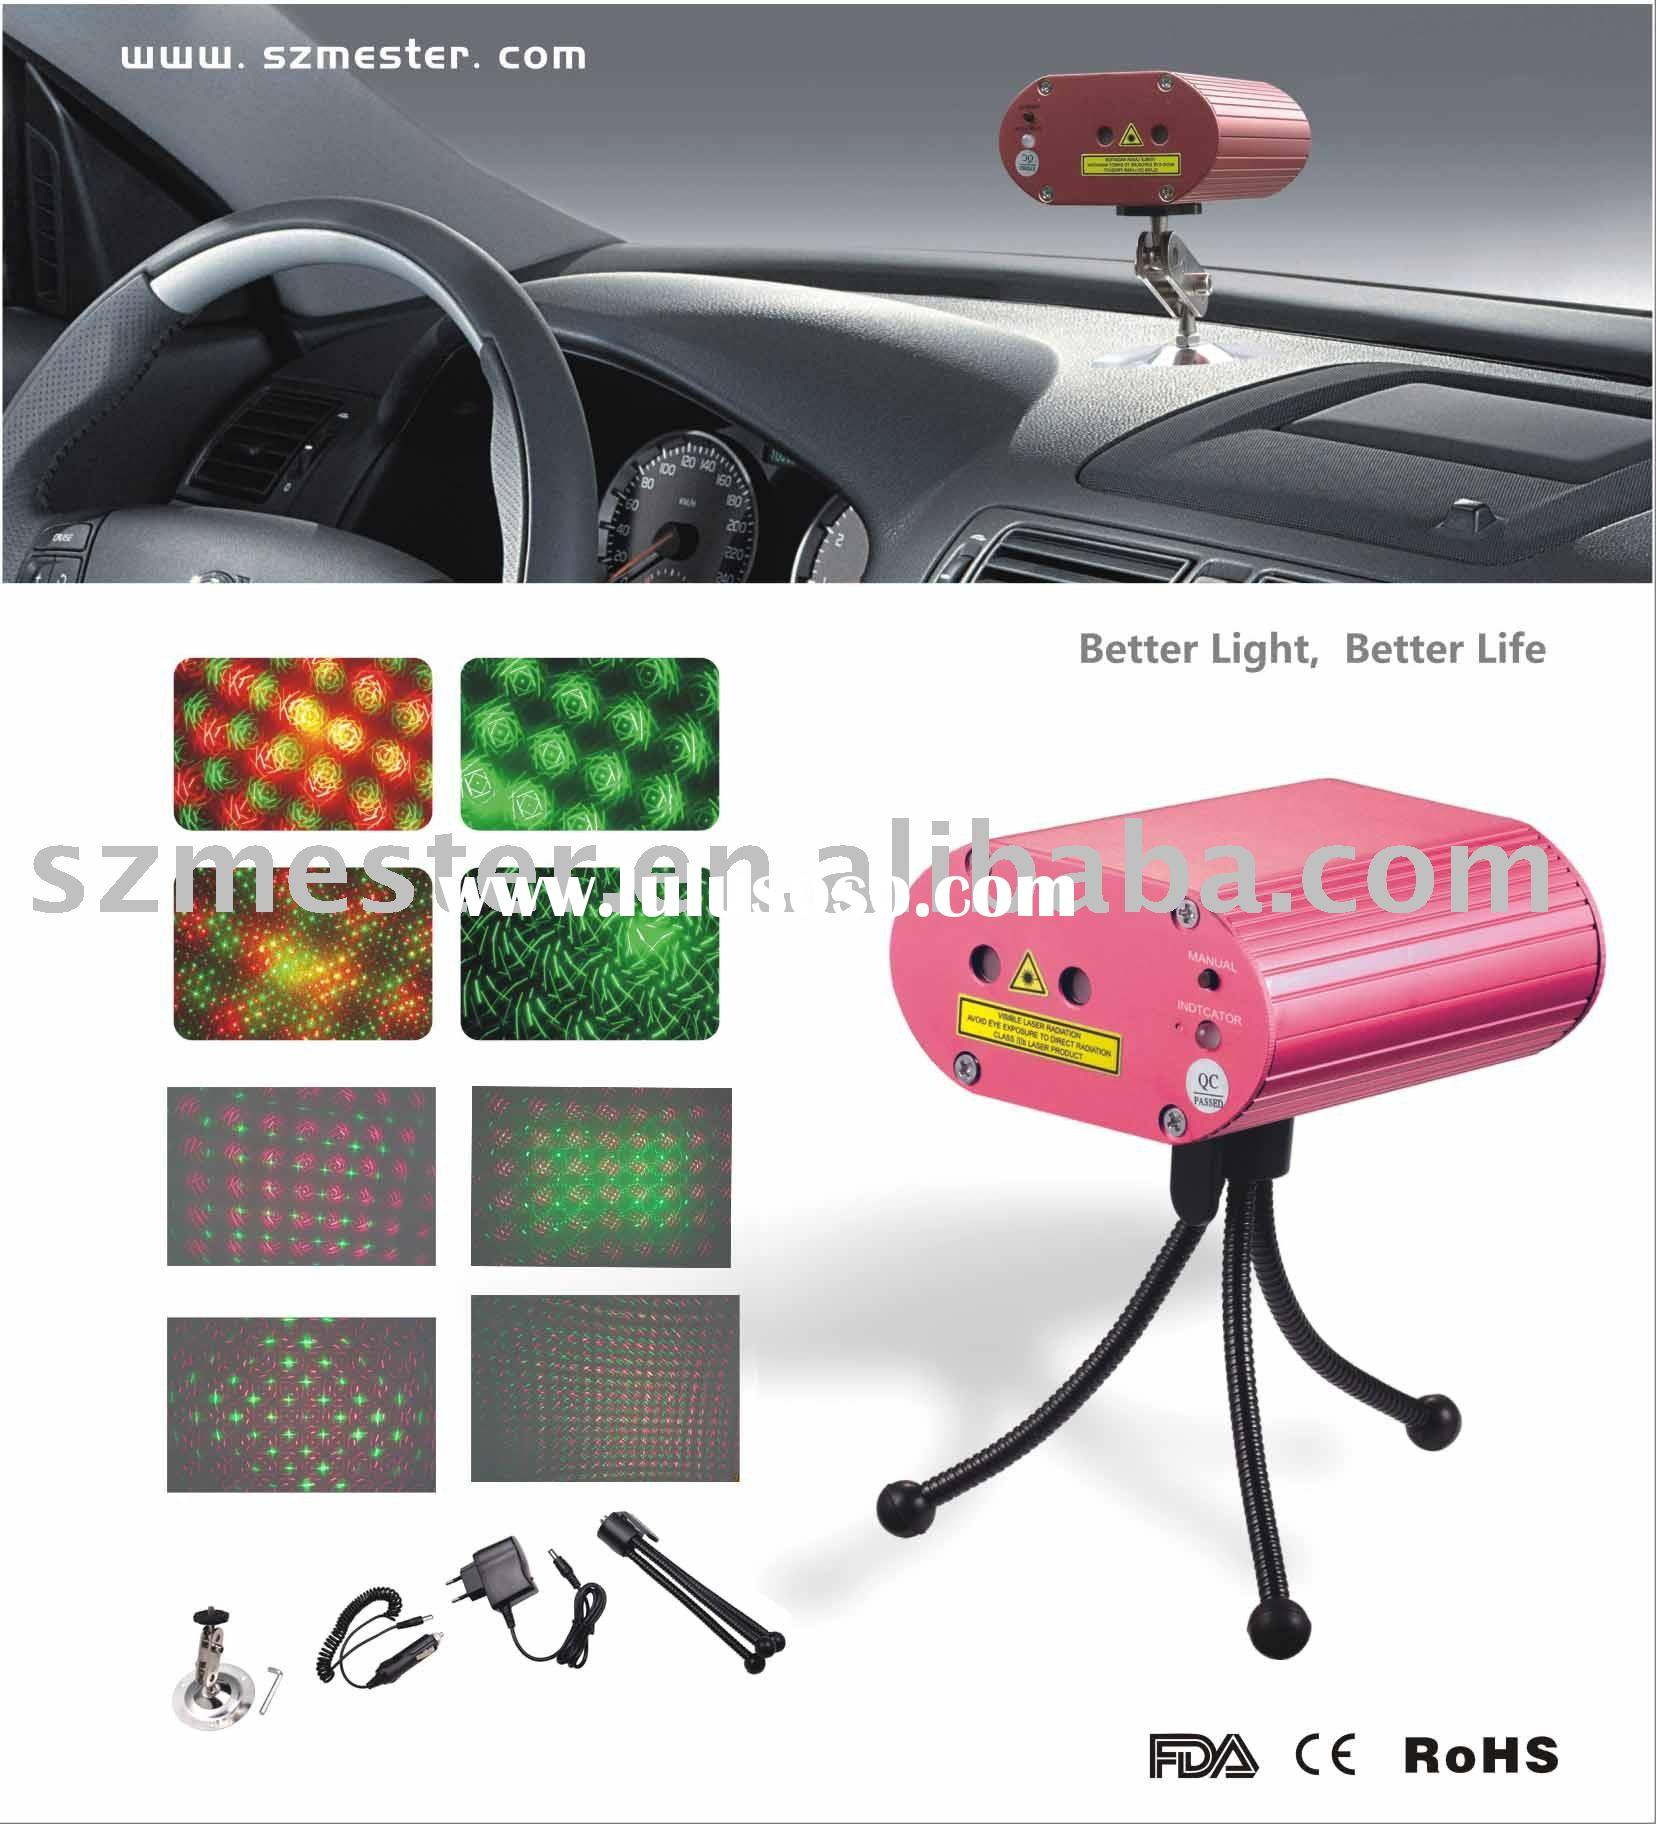 Laser show system , Mini laser light , Party light . 3.5W mini laser show .